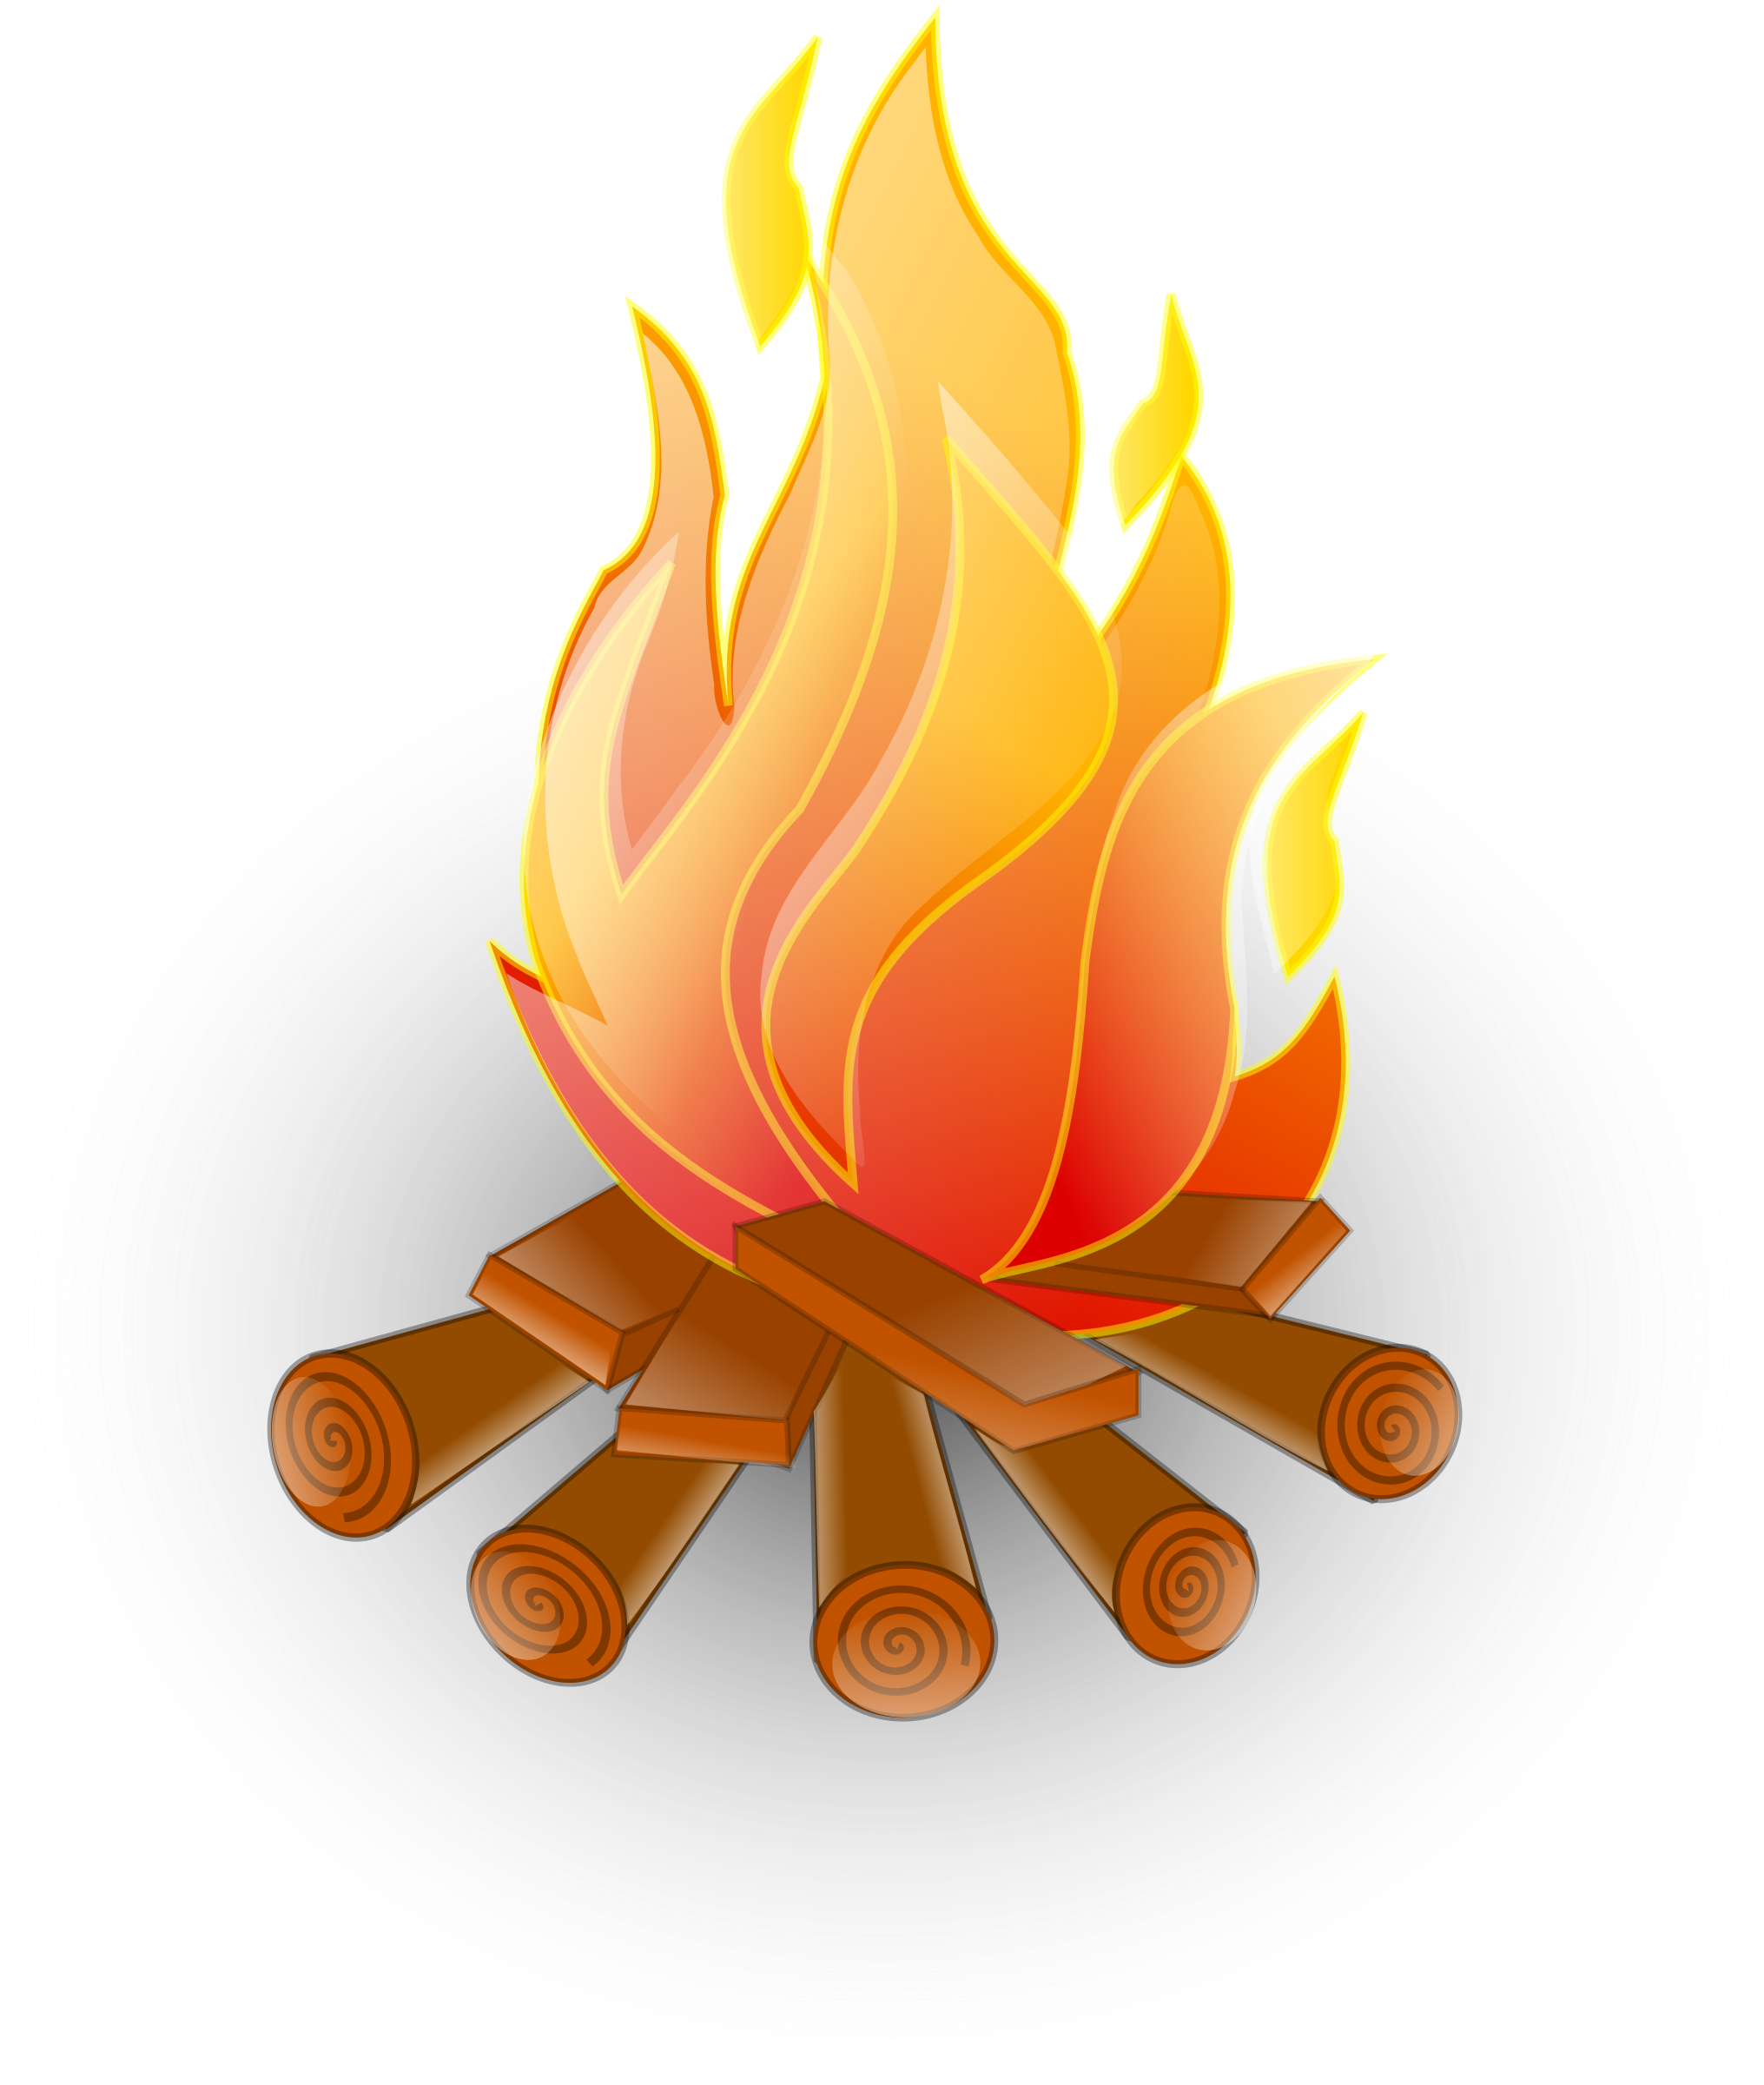 Flames clipart fire spark. Flaming of movieplus me